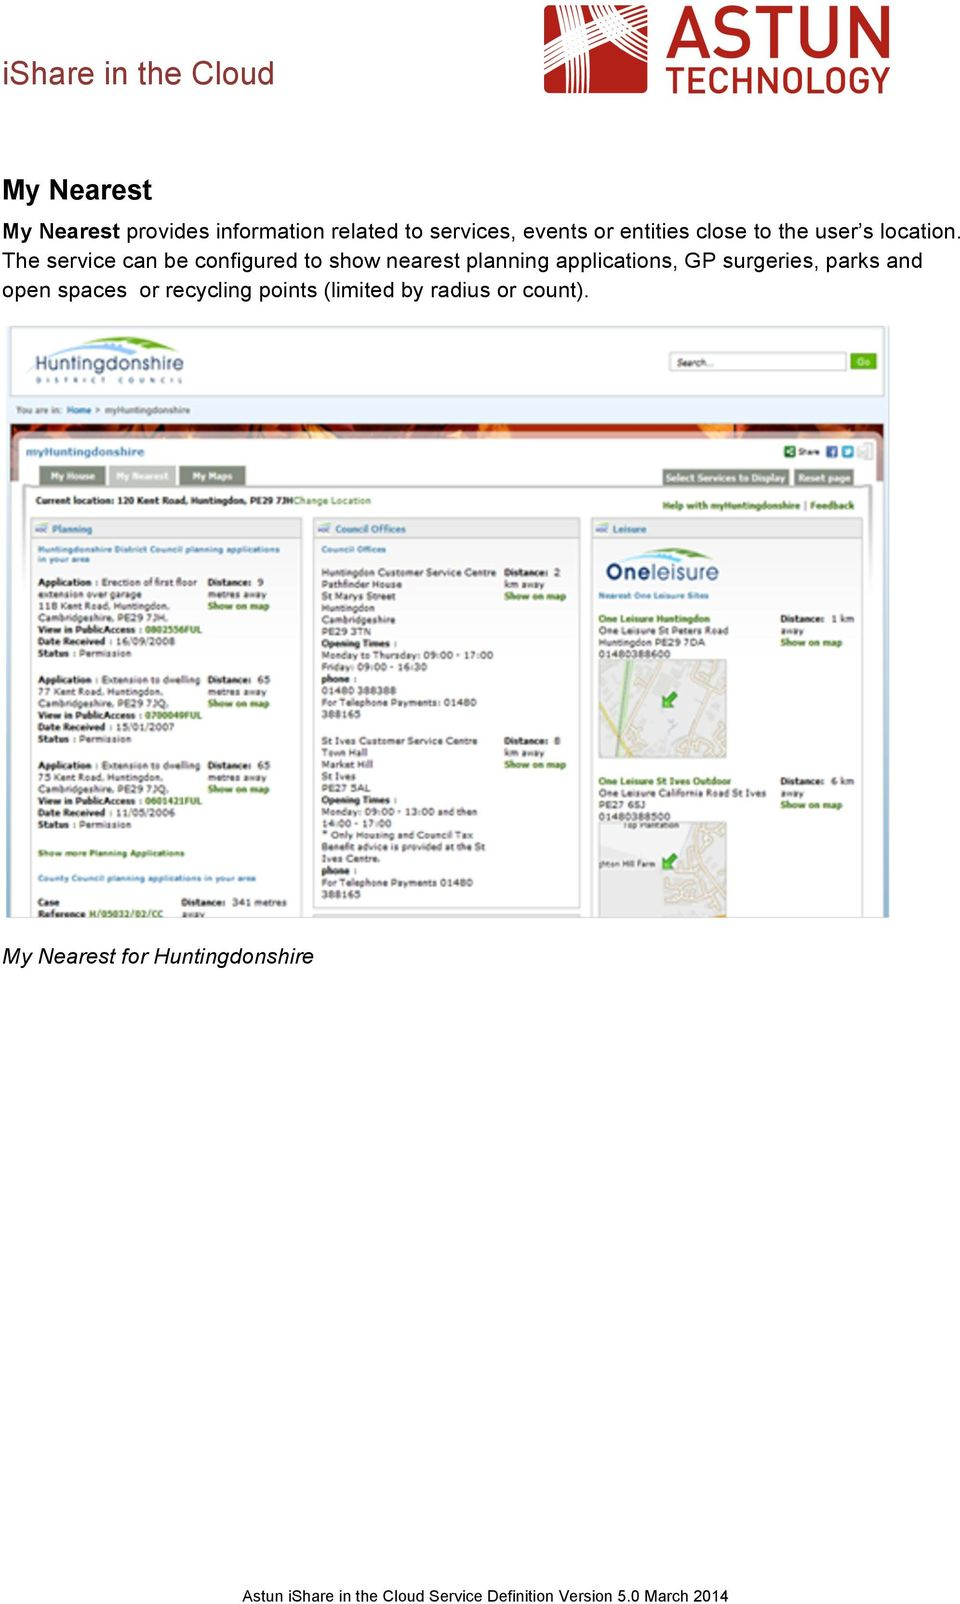 The service can be configured to show nearest planning applications, GP